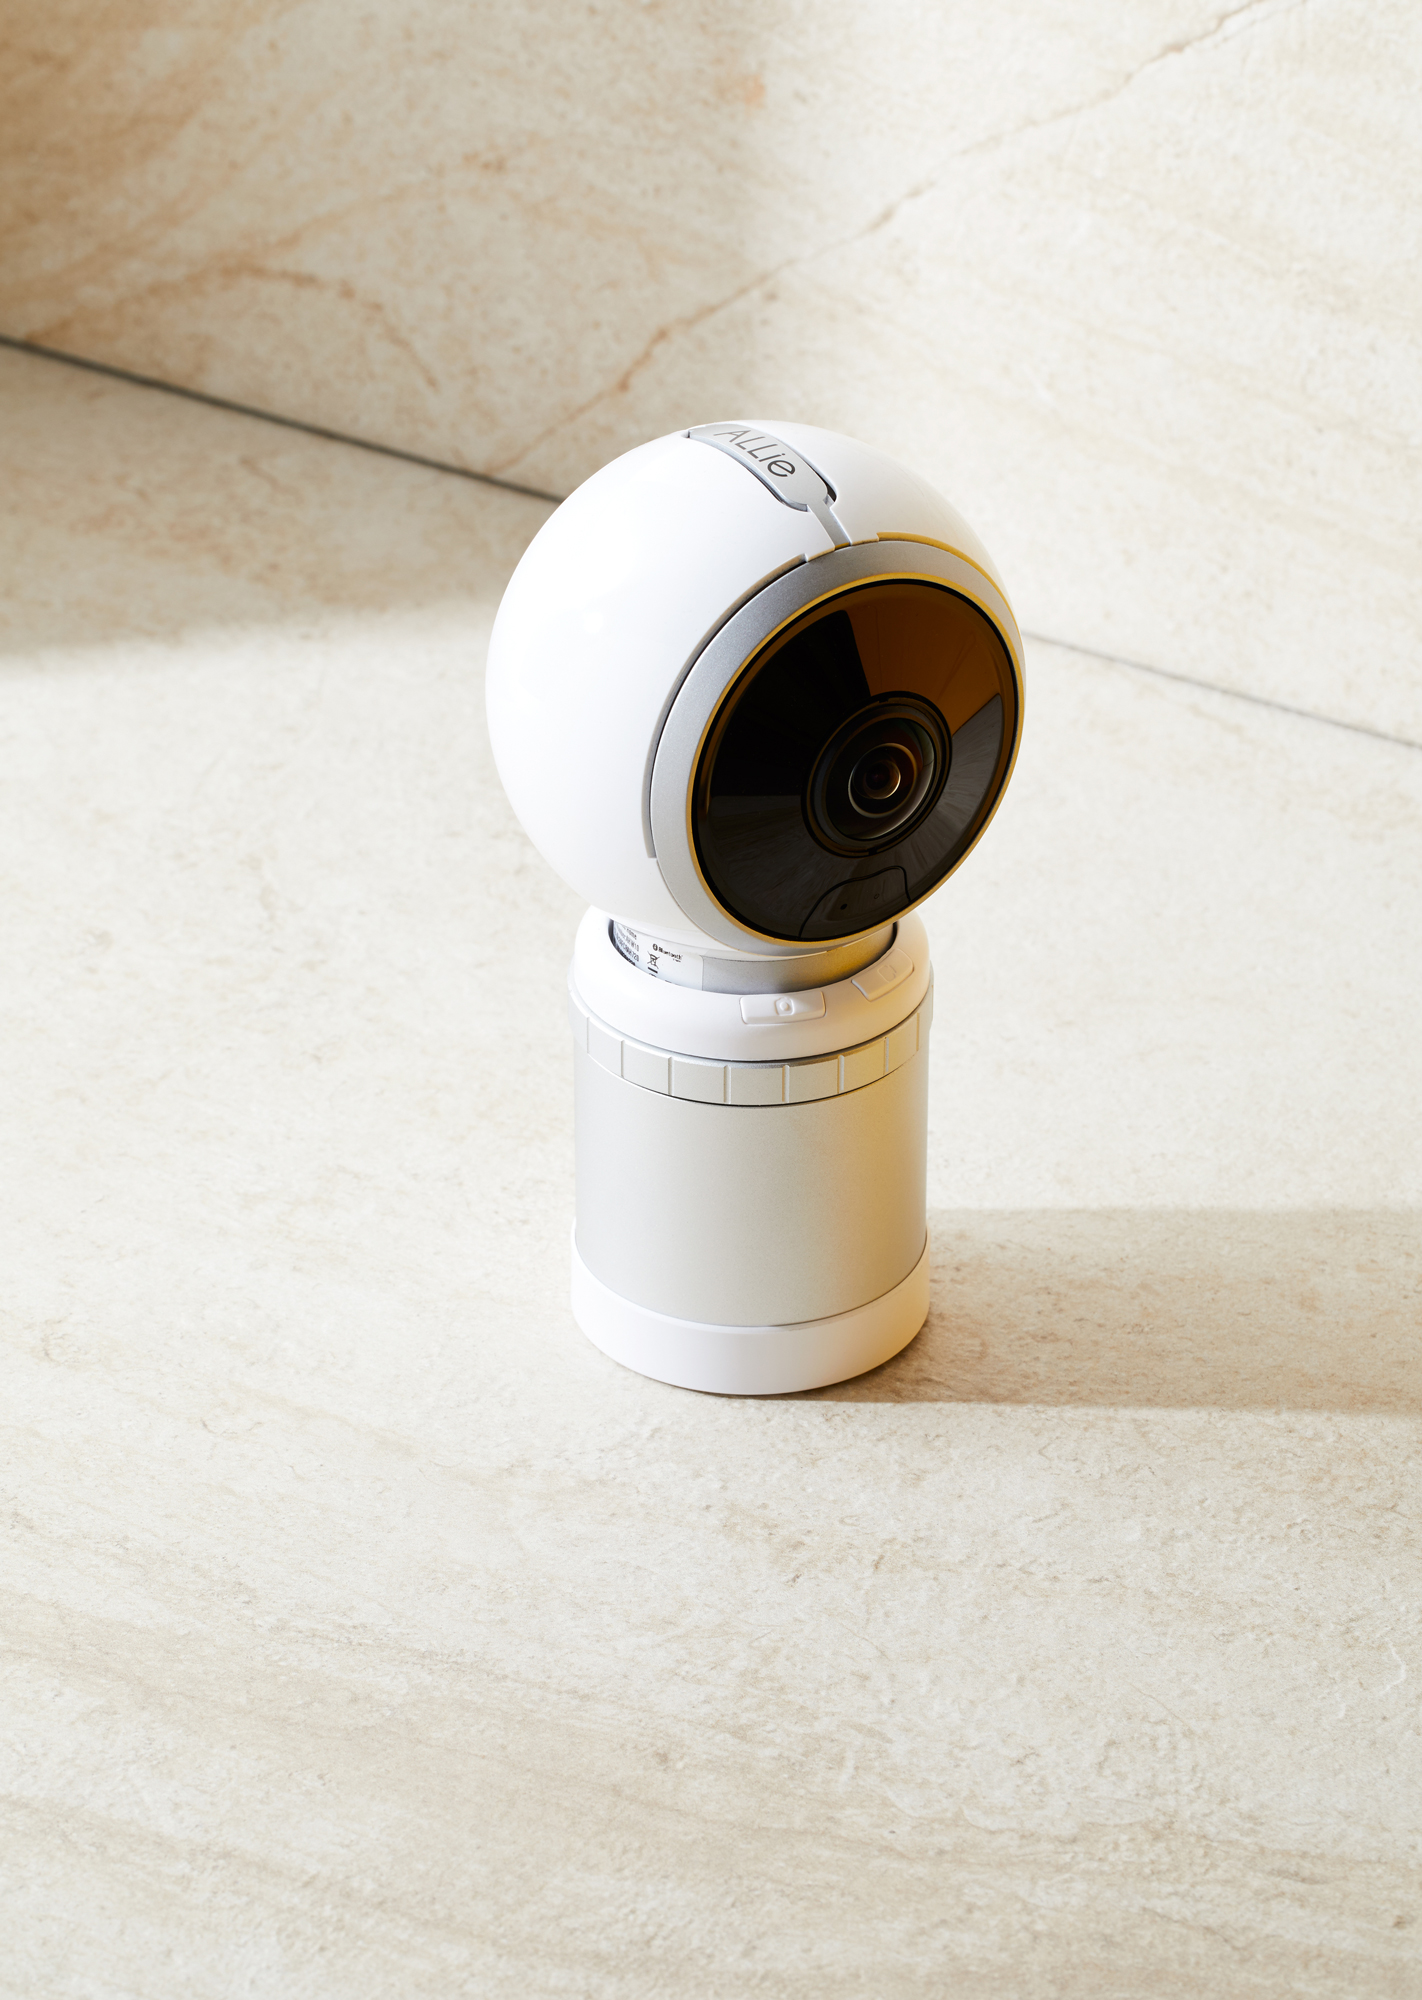 <b>ALLie Camera</b><br> It uses technology originally developed for the surveillance industry and can capture images in low light.